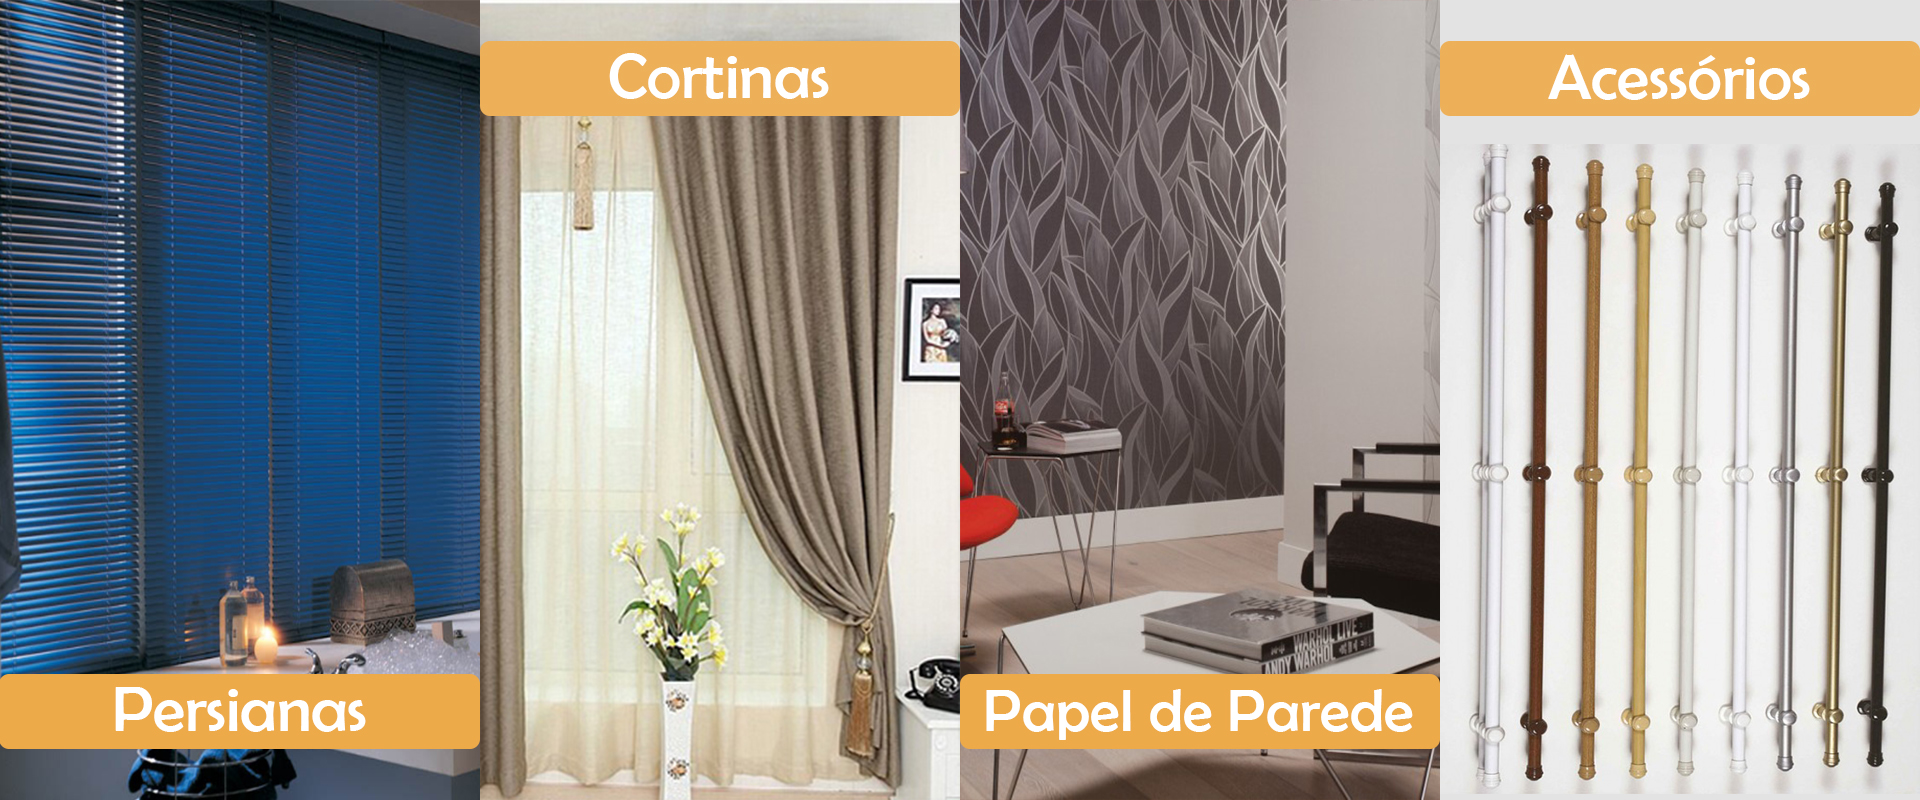 Cortinas e Persianas